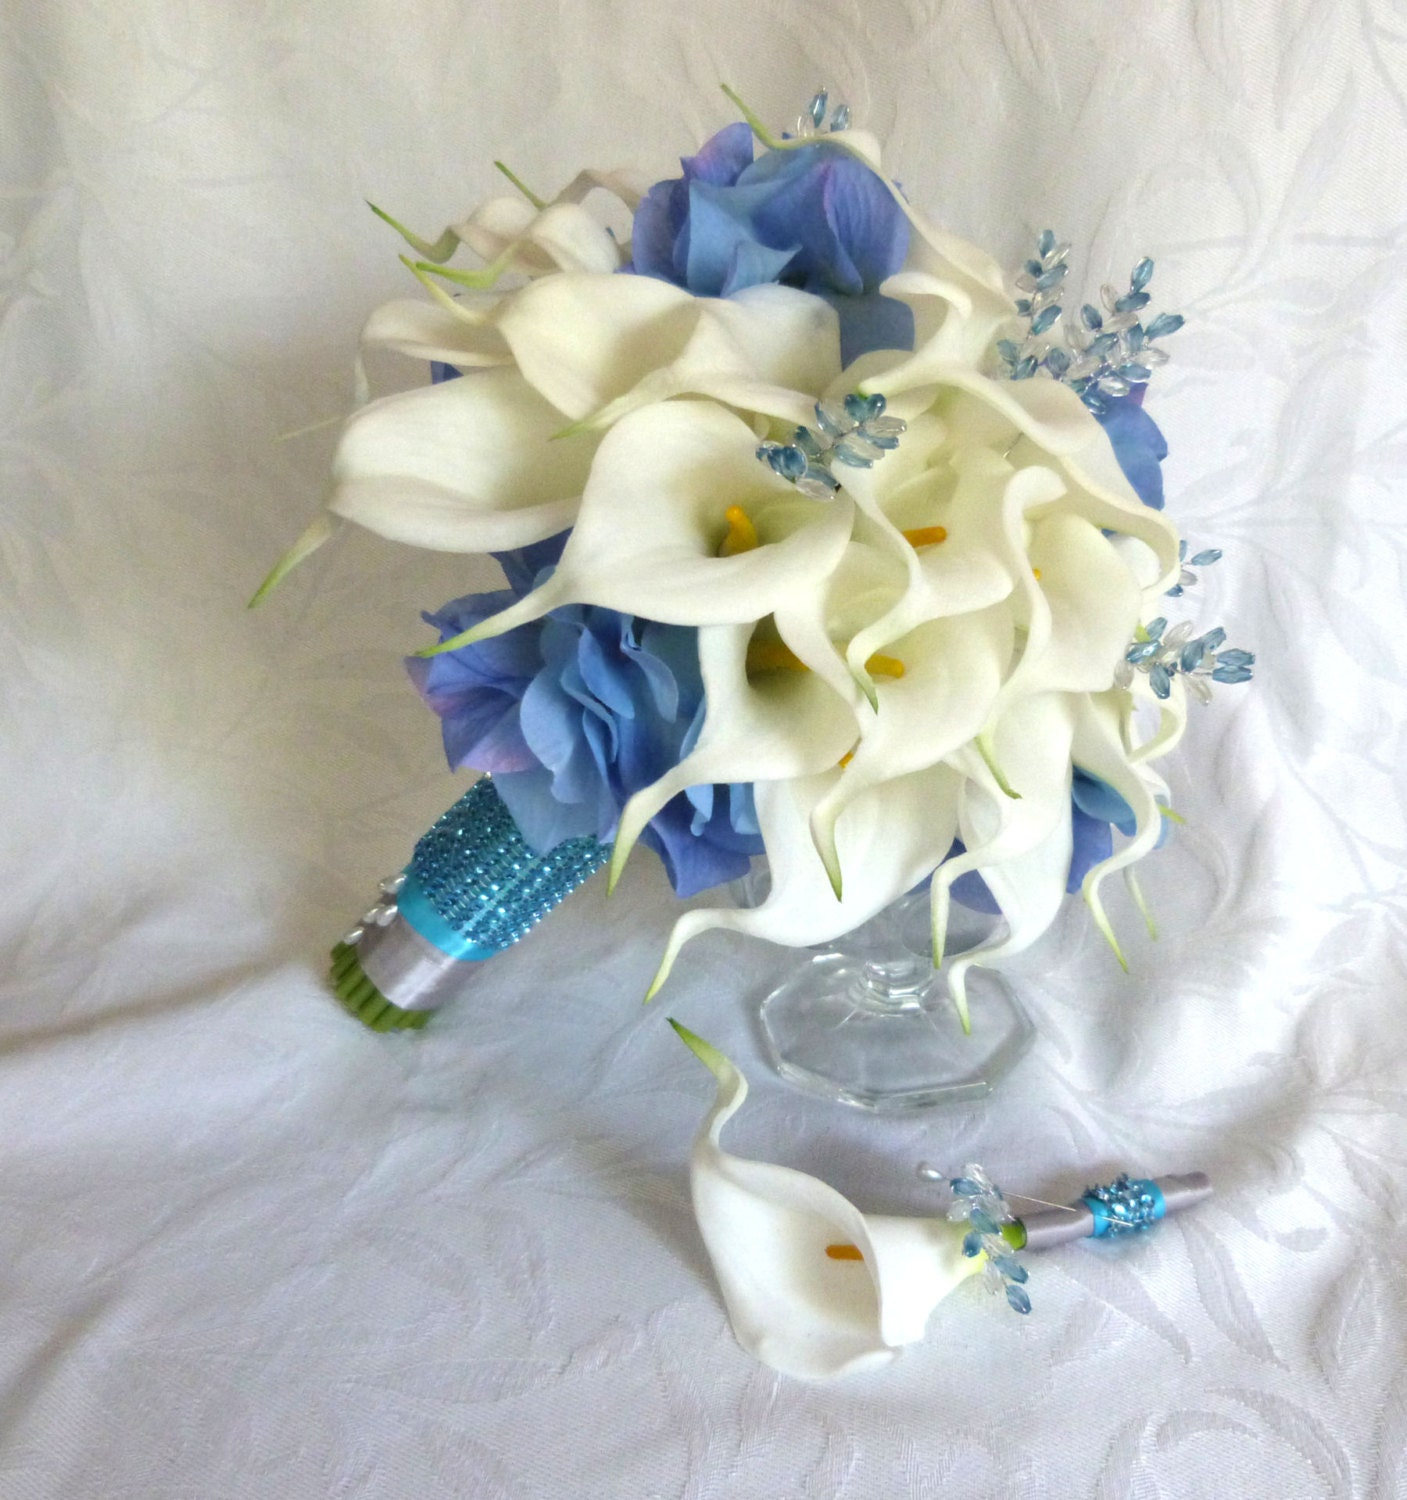 Wedding Bouquets With Arum Lilies : White calla lily with blue hydrangea wedding bouquet real